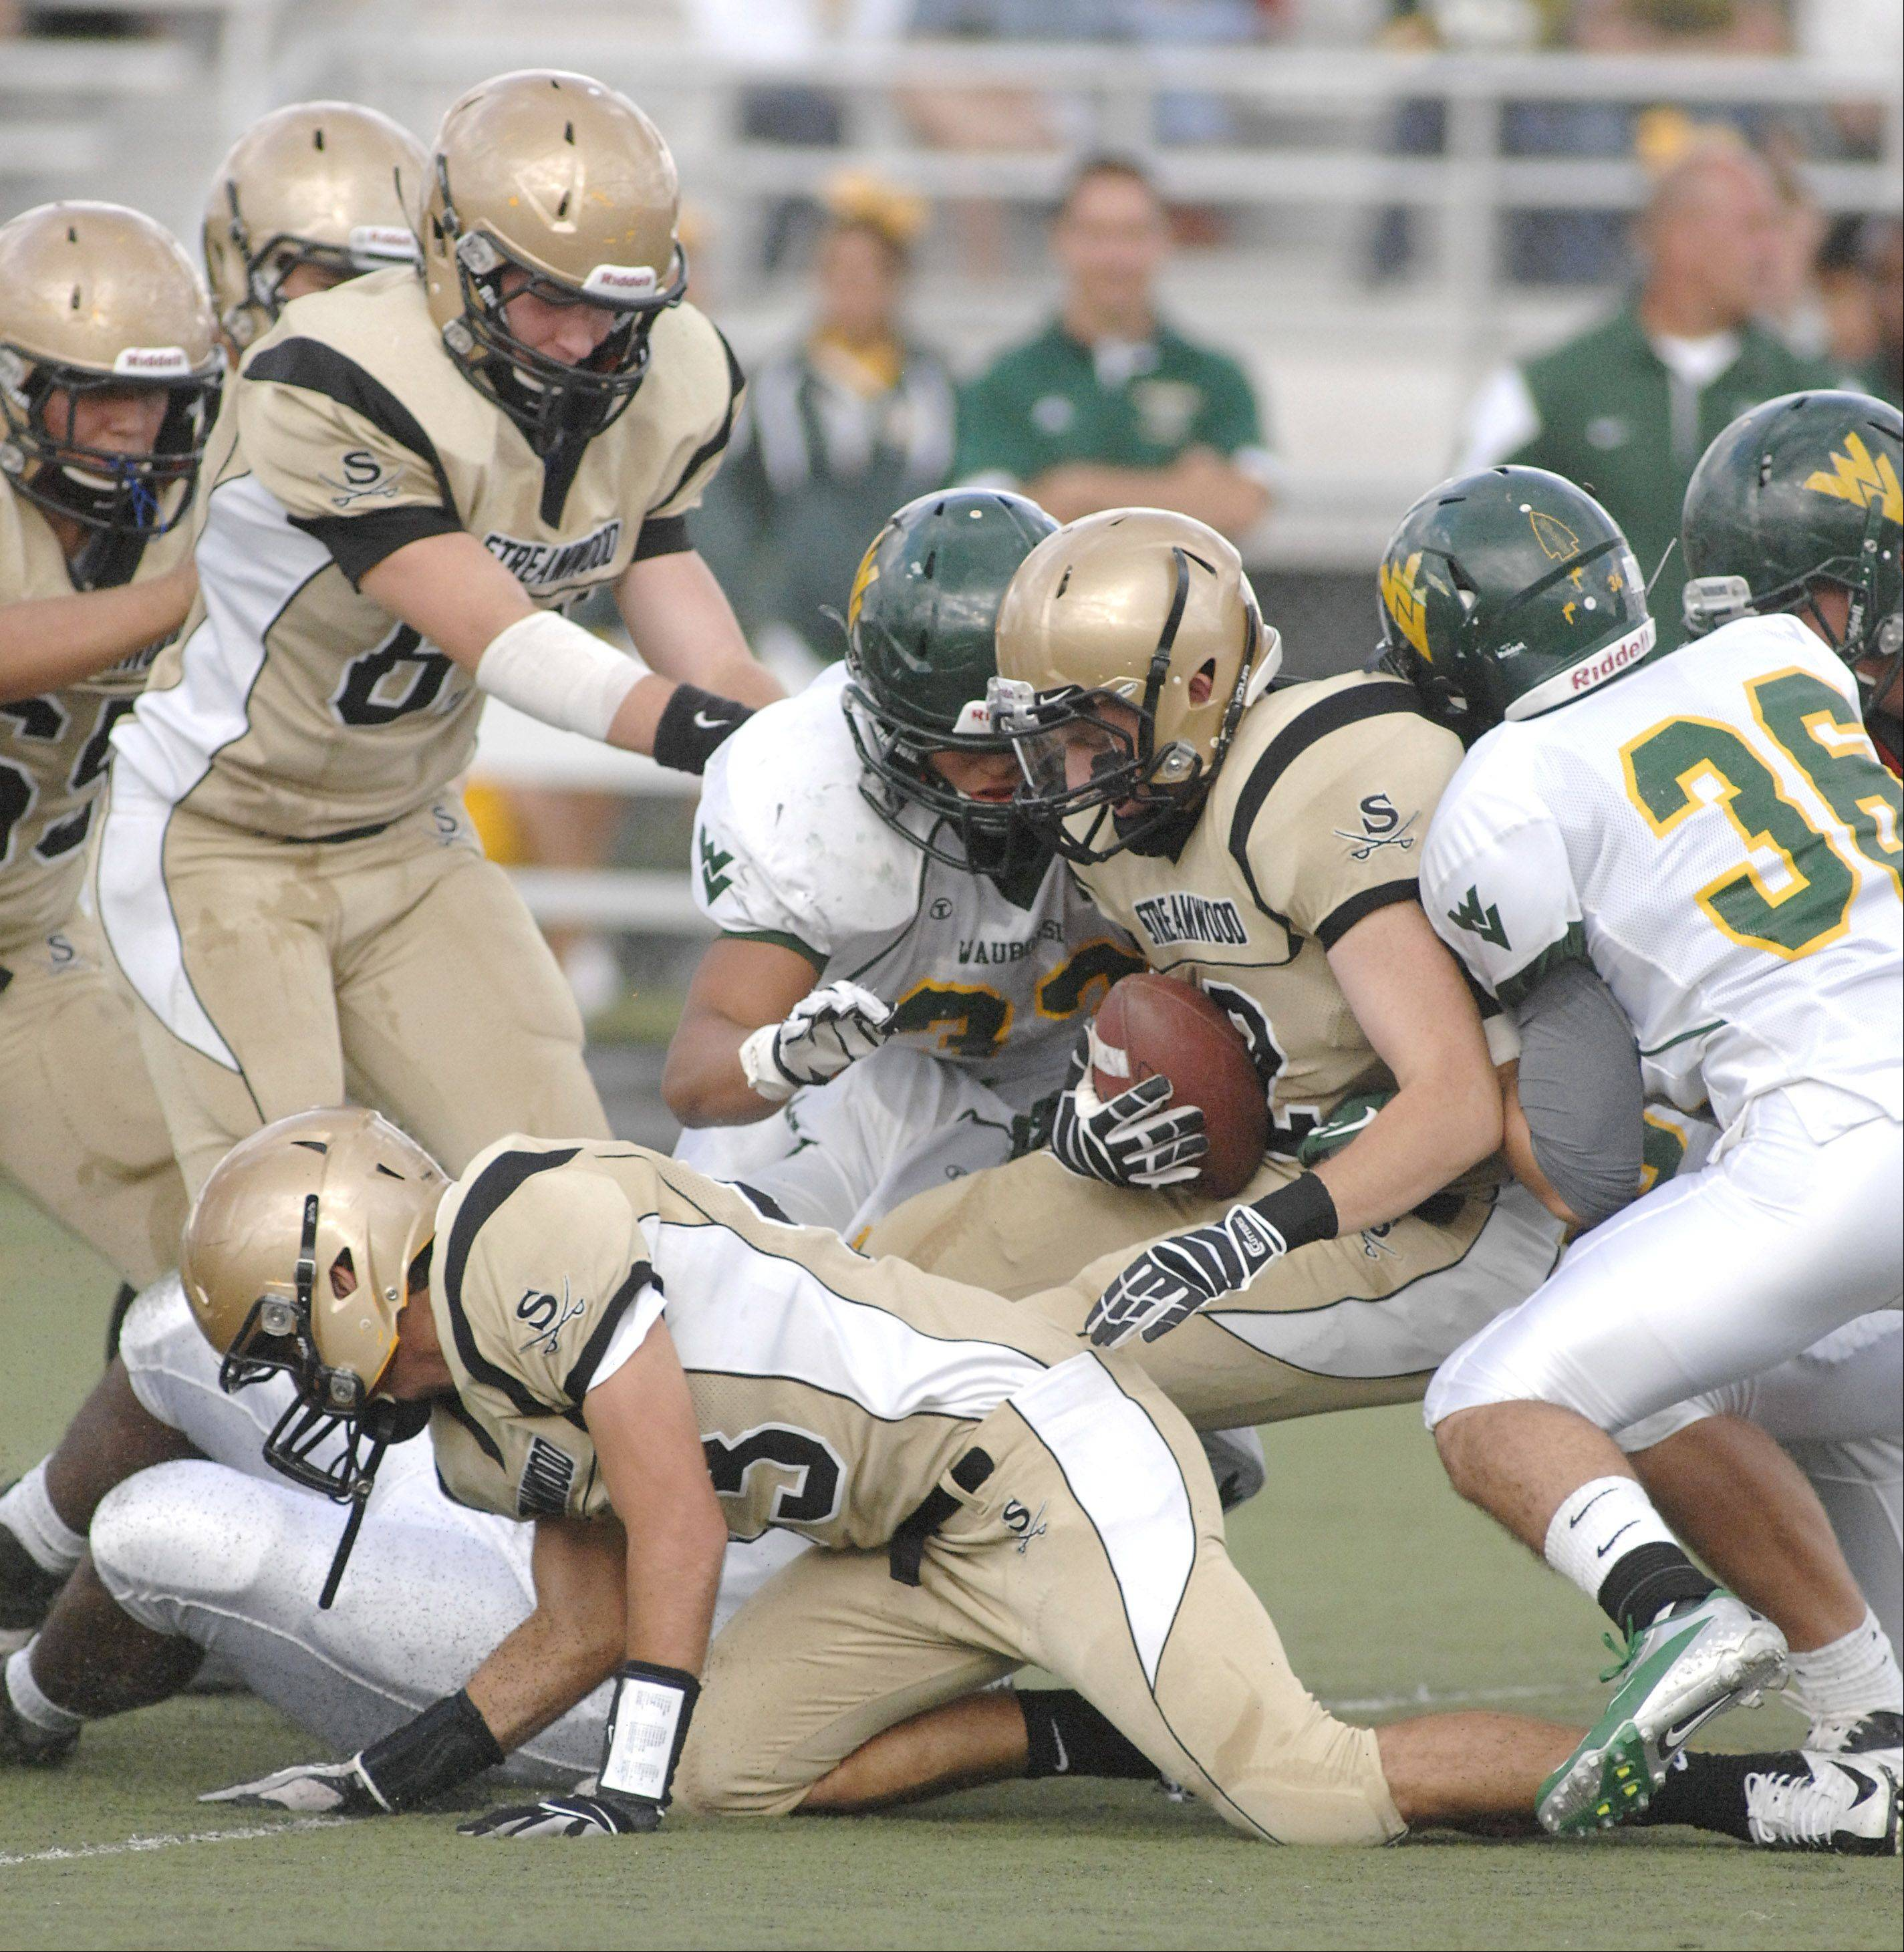 Streamwood's Tyler Hendershot is bought down in a mass tackle in the second quarter on Saturday, September 8.